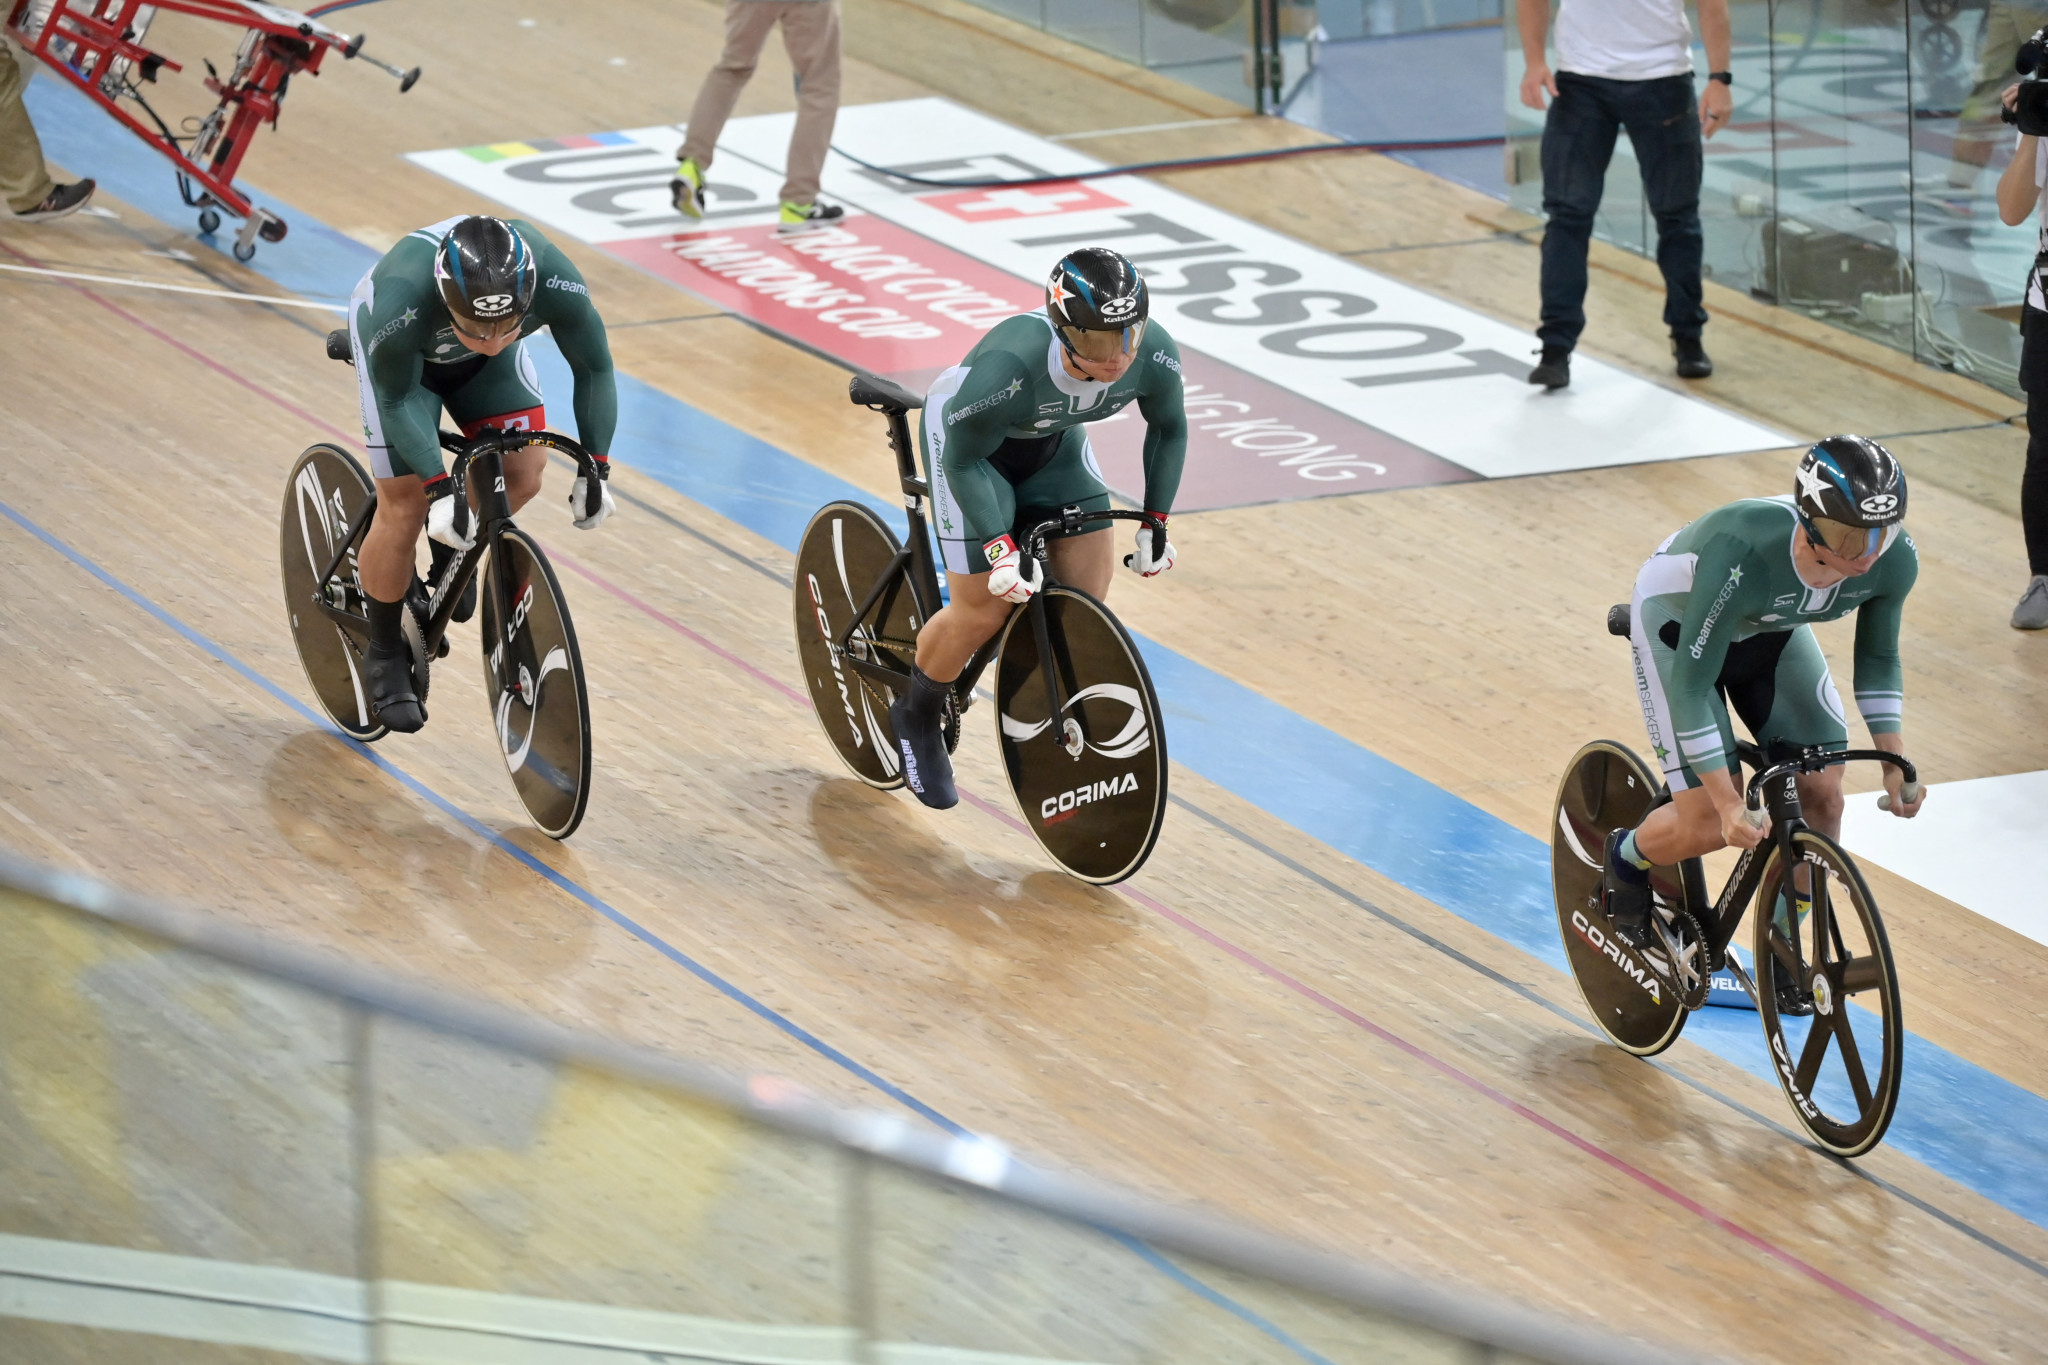 Japanese trio and Hong Kong win team sprints at UCI Track Cycling Nations Cup